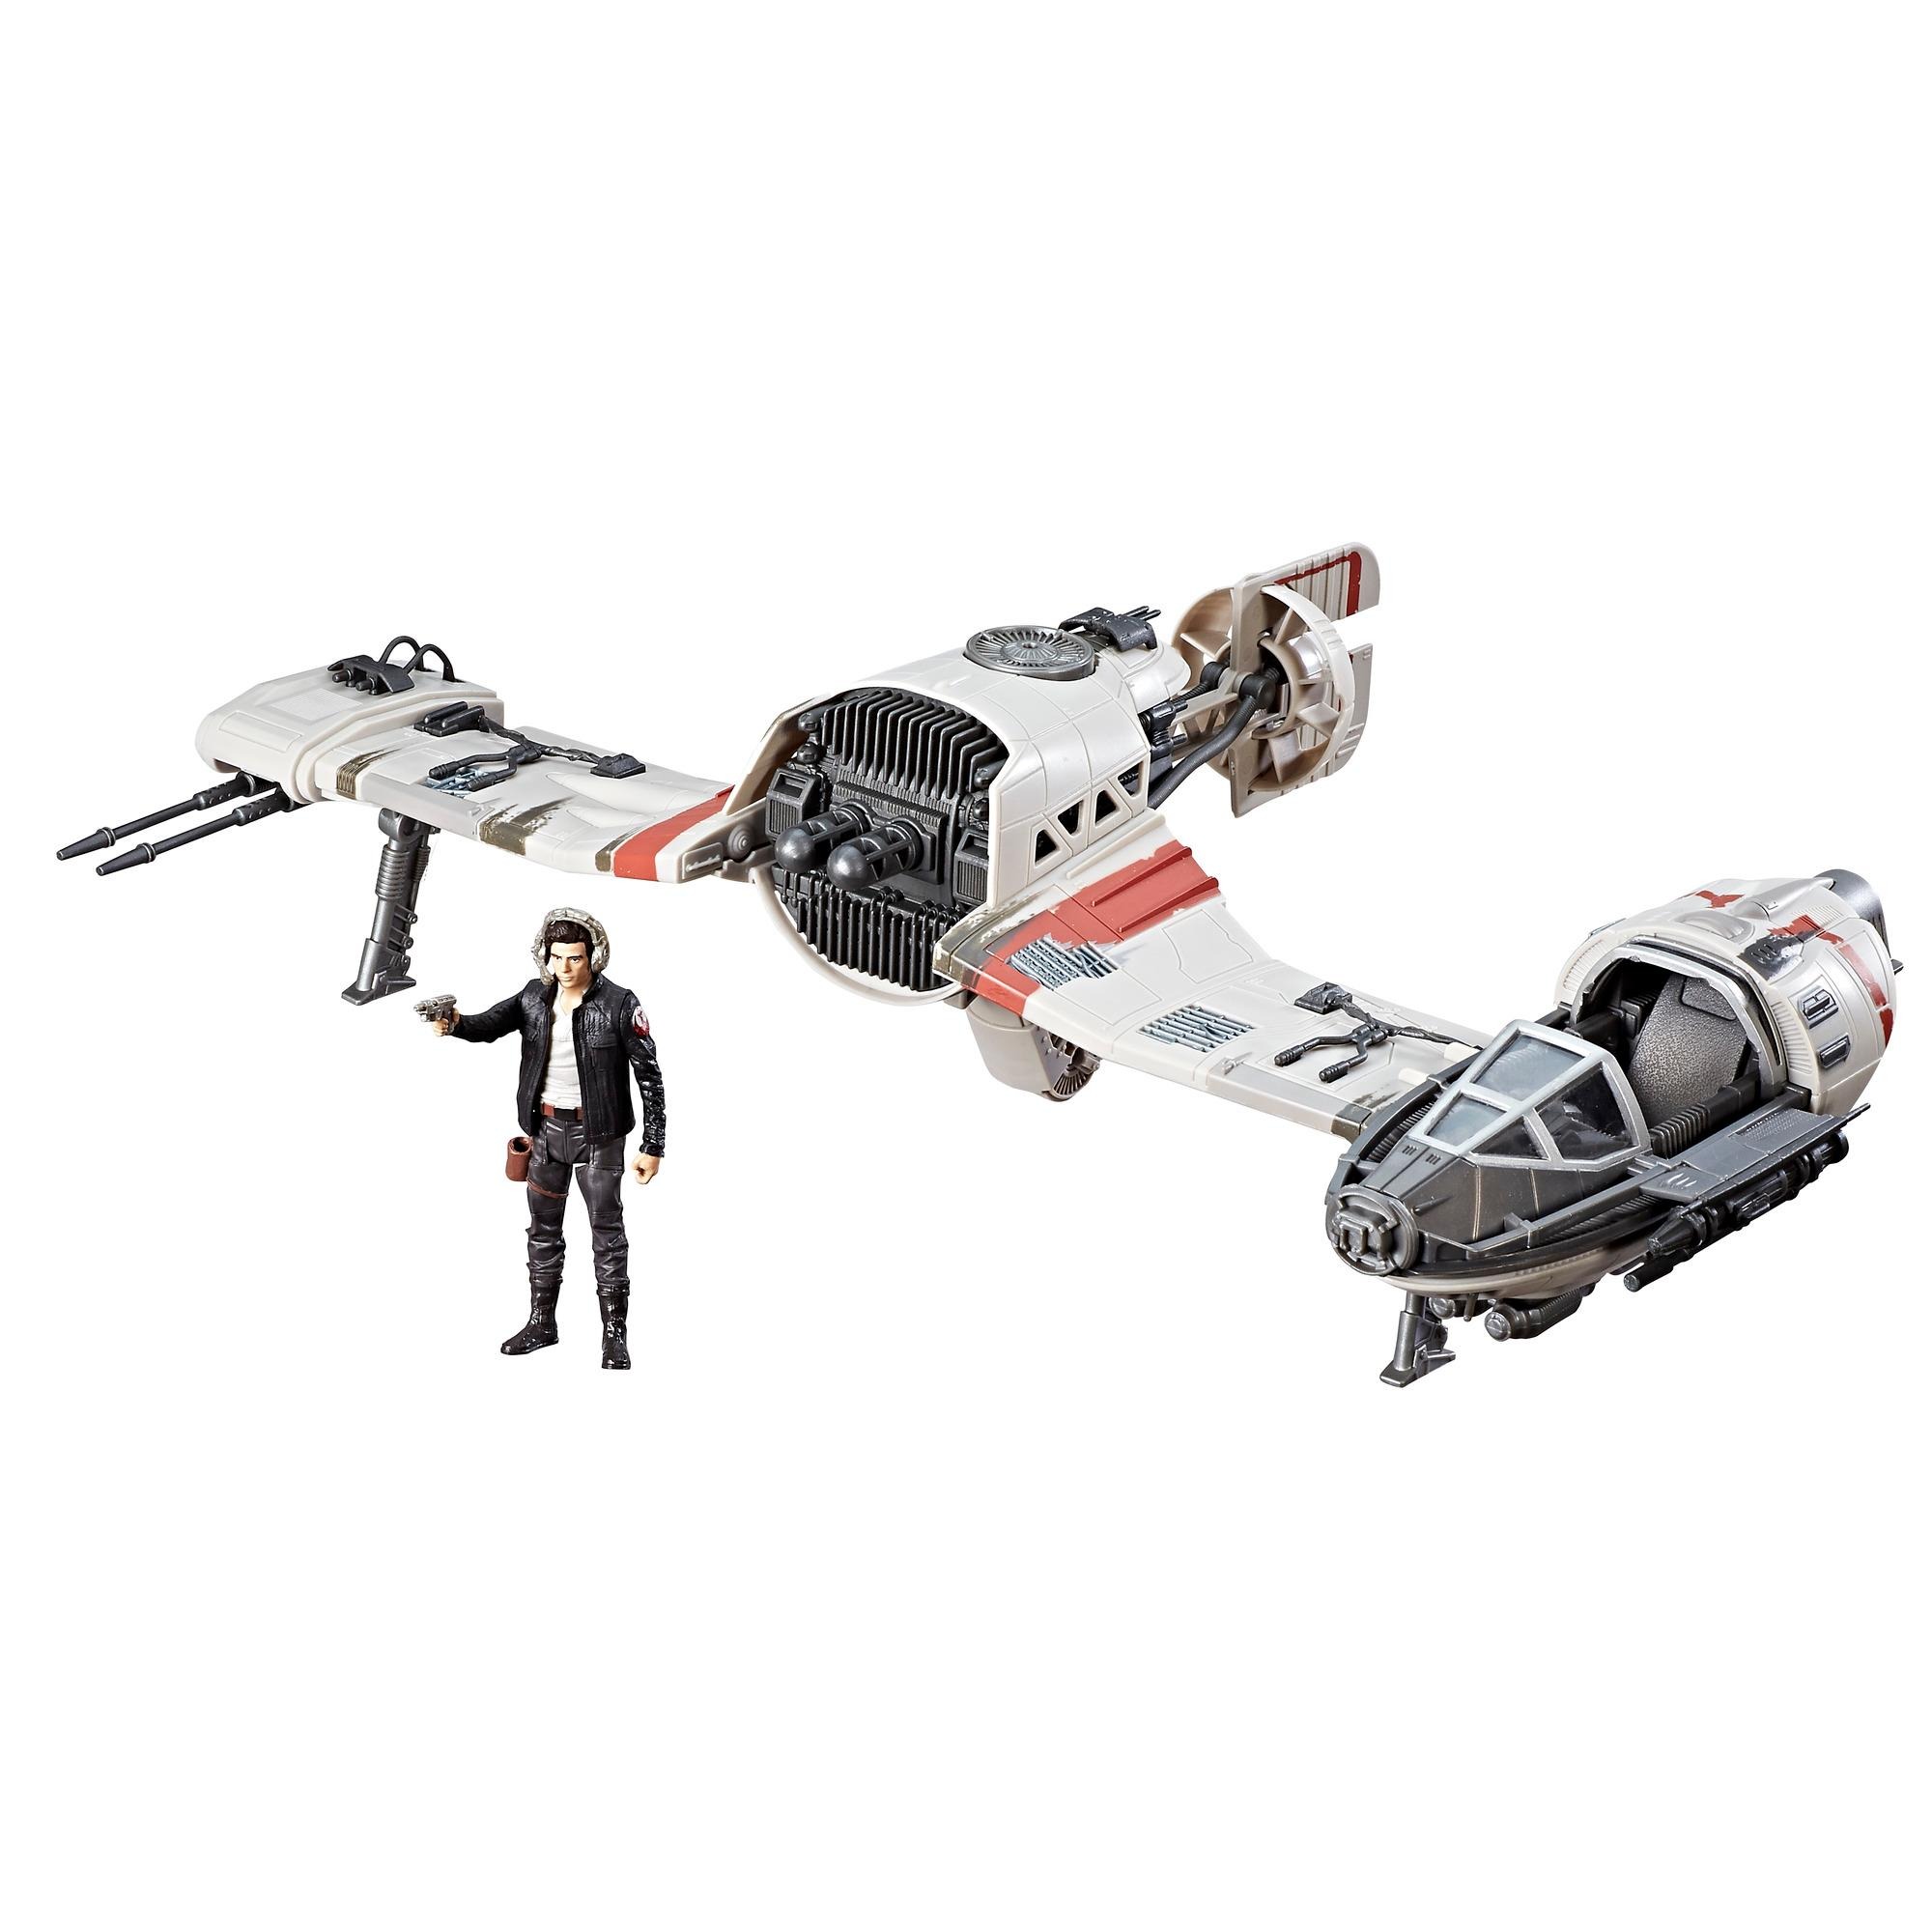 STAR WARS FORCE RESISTANCE SKI SPEEDER ΚΑΙ POE DAMERON ΦΙΓΟΥΡΑ